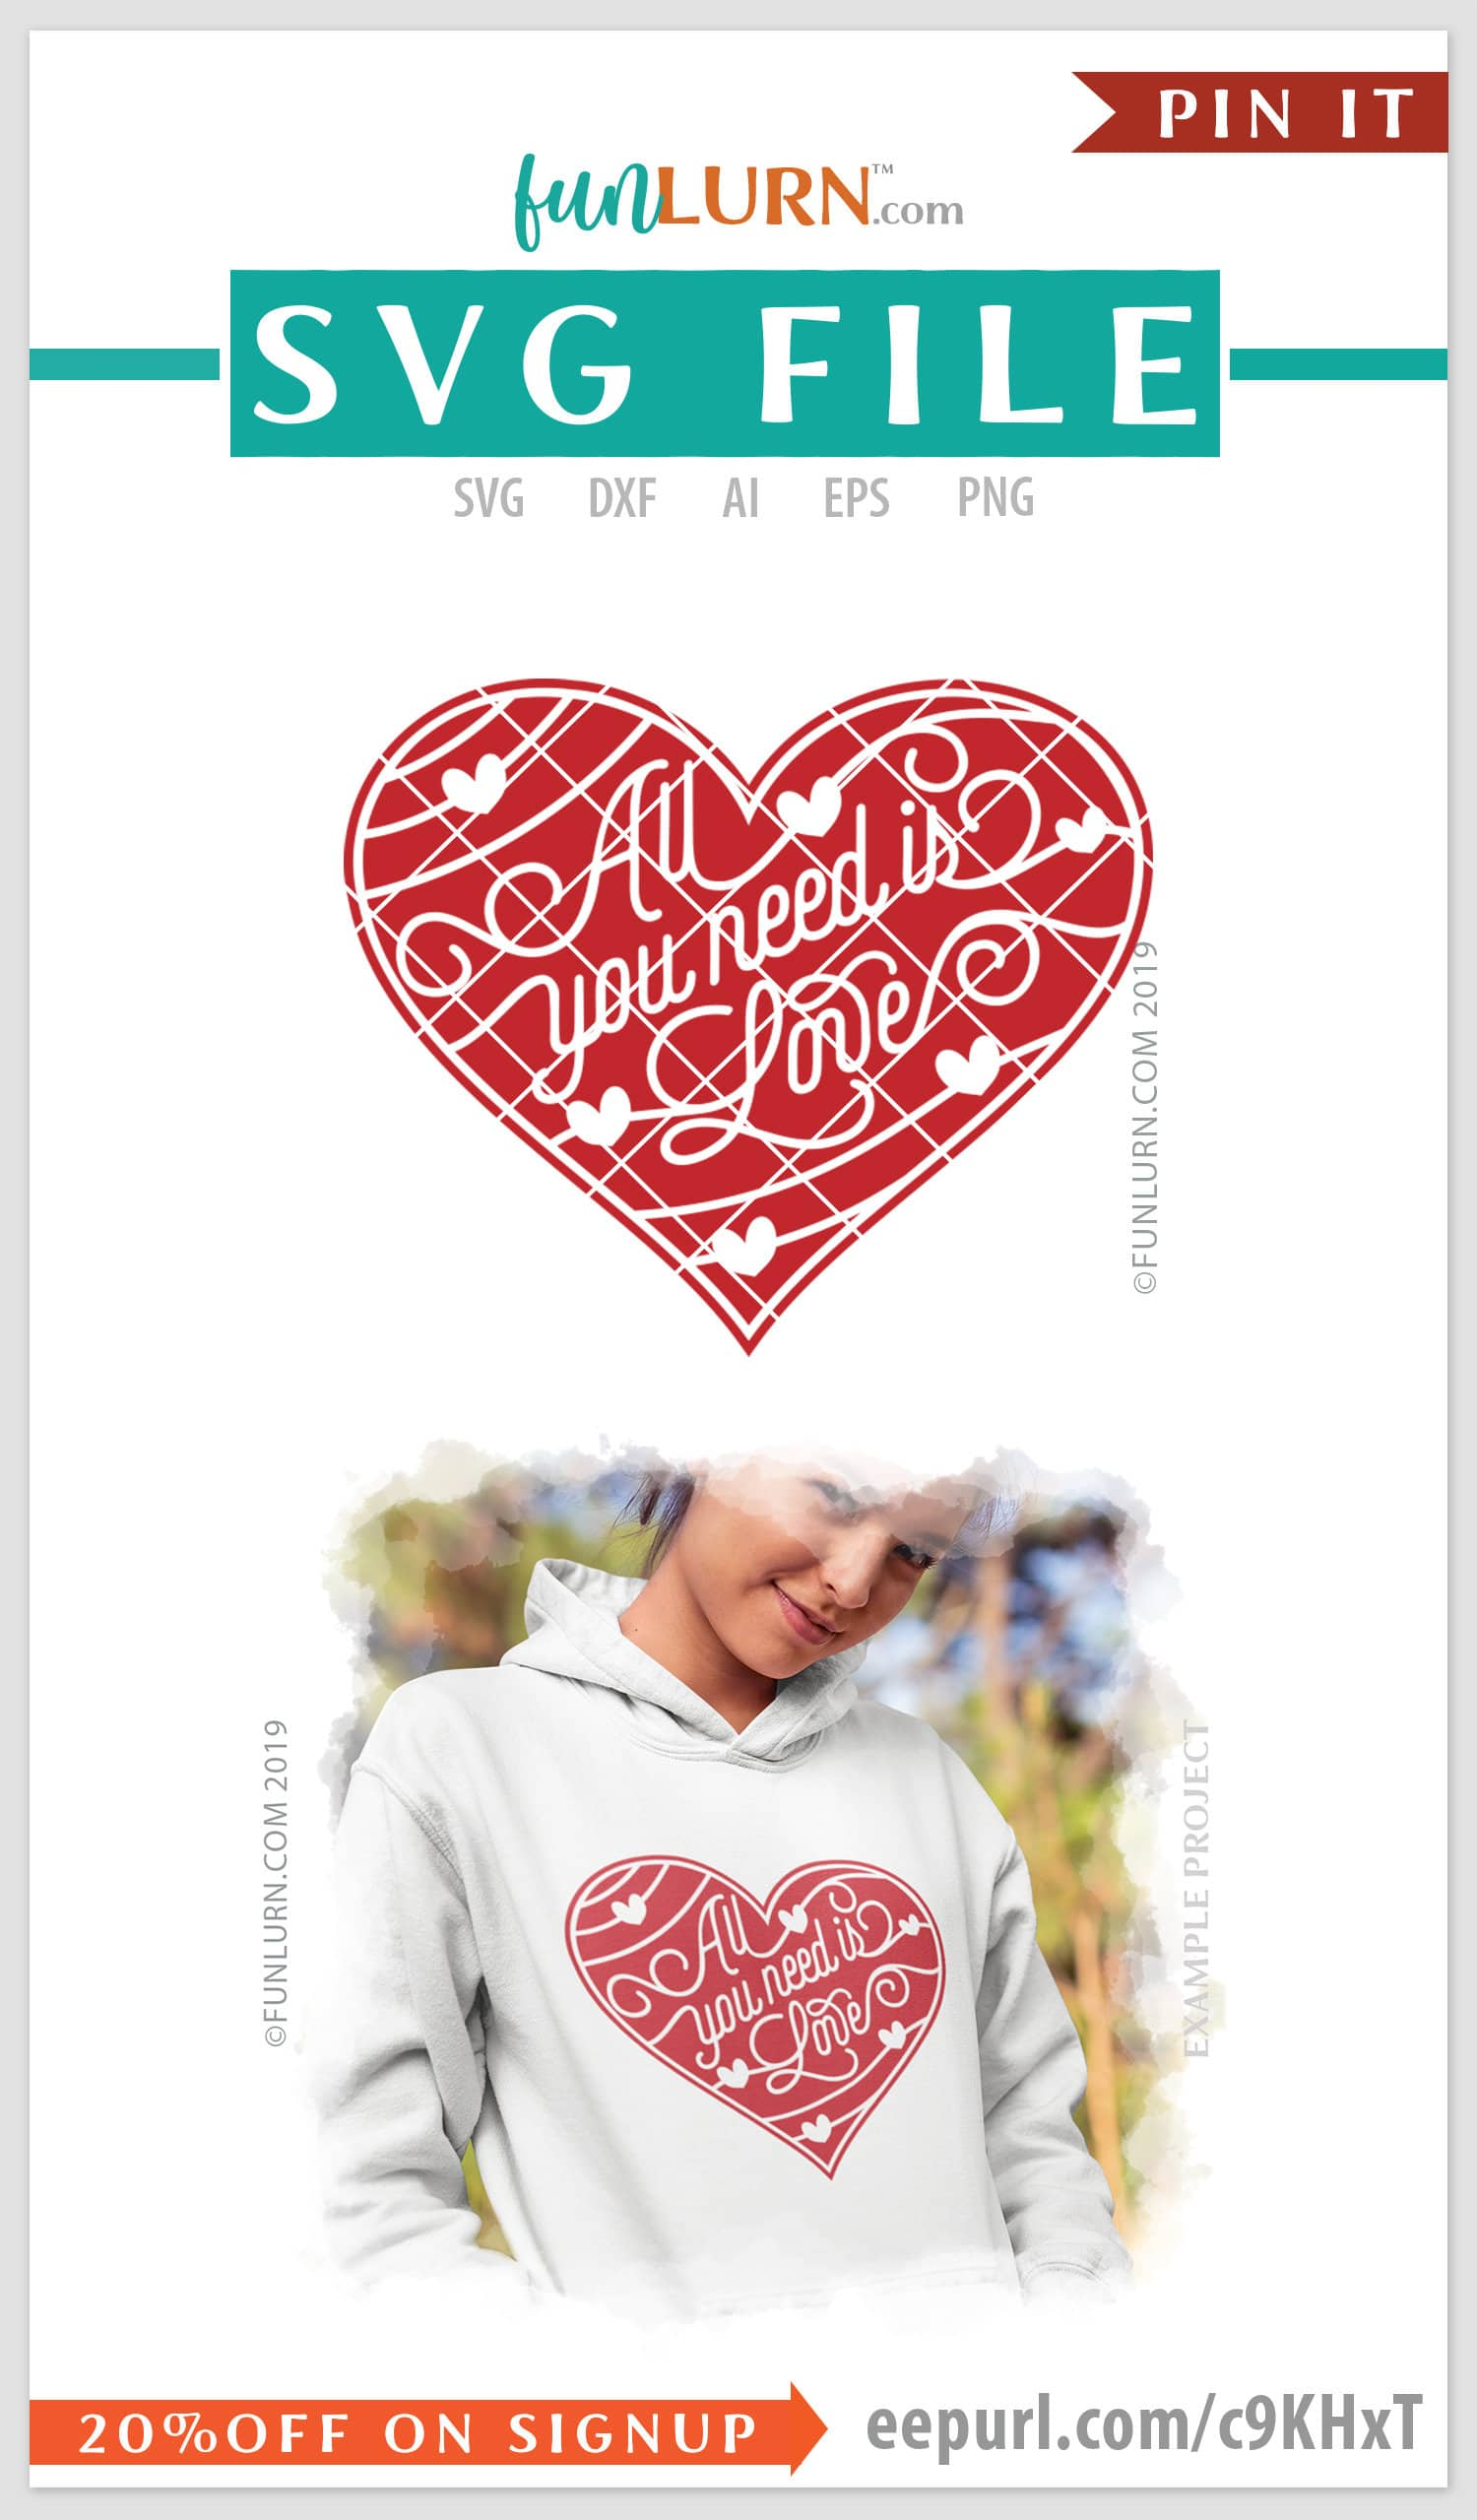 All You Need Is Love Svg Funlurn